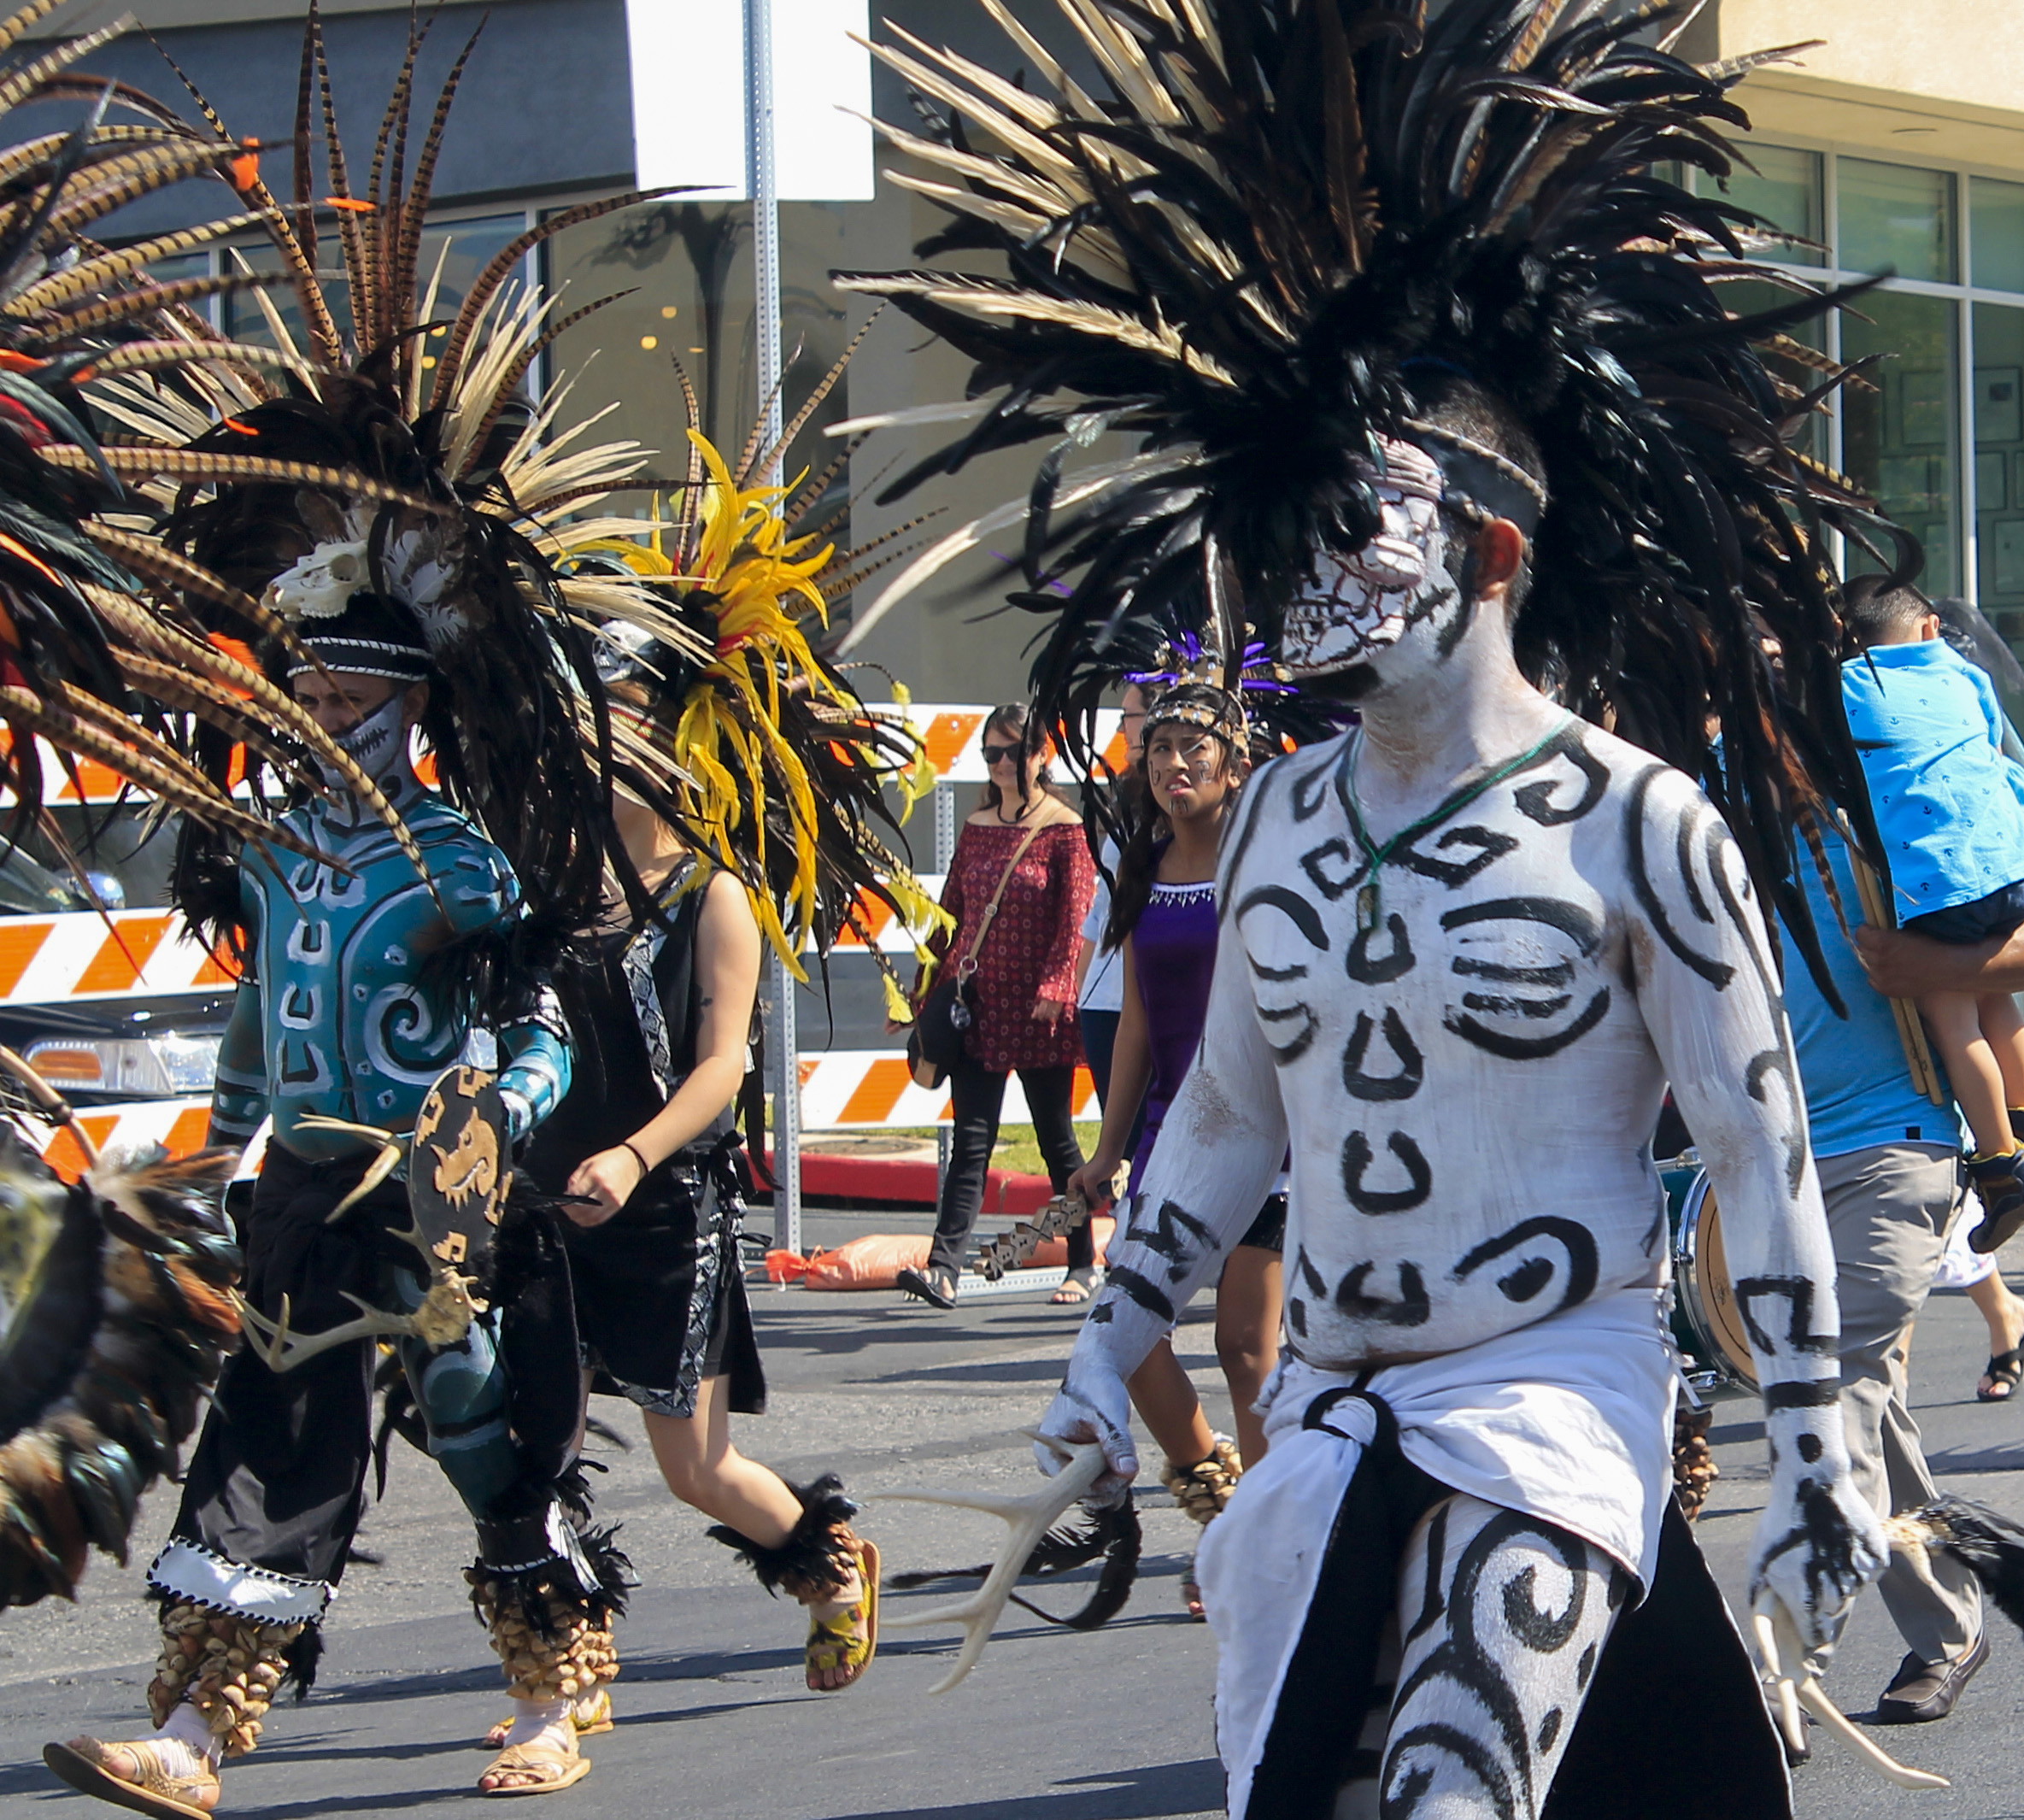 Dancers from Danza Azteca Guadalupana parade through downtown on their way to the Viva la Vida festival's stage. The group has dancers of all ages and sexes and they perform throughout the year. Photo by Alex Vickery. Editing by Olivia Starich.